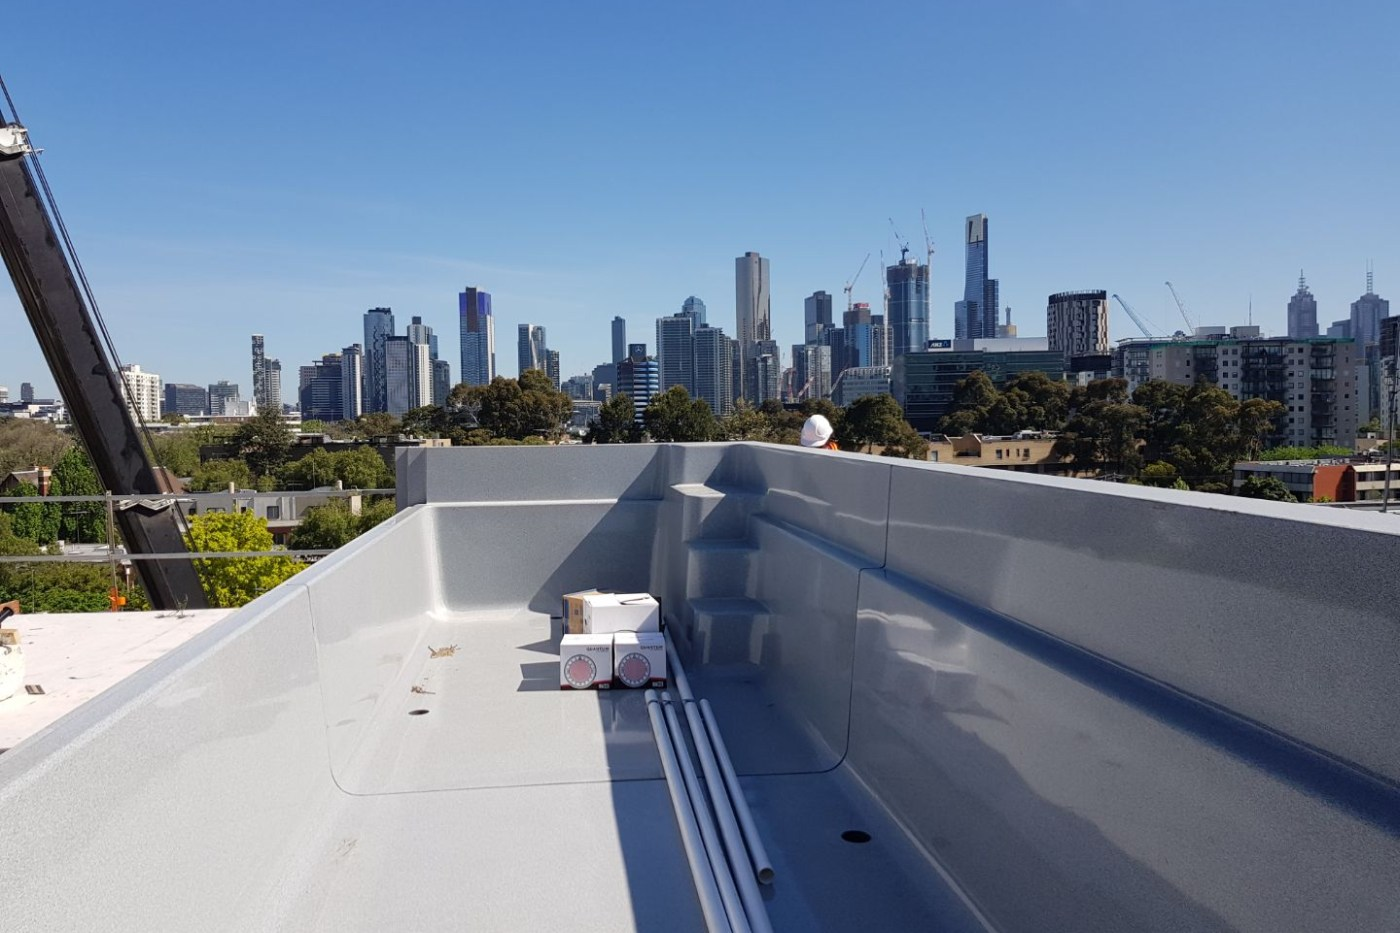 Compass Pools Melbourne 8m custom Fastlane glass wall pool South Melbourne Construction photo